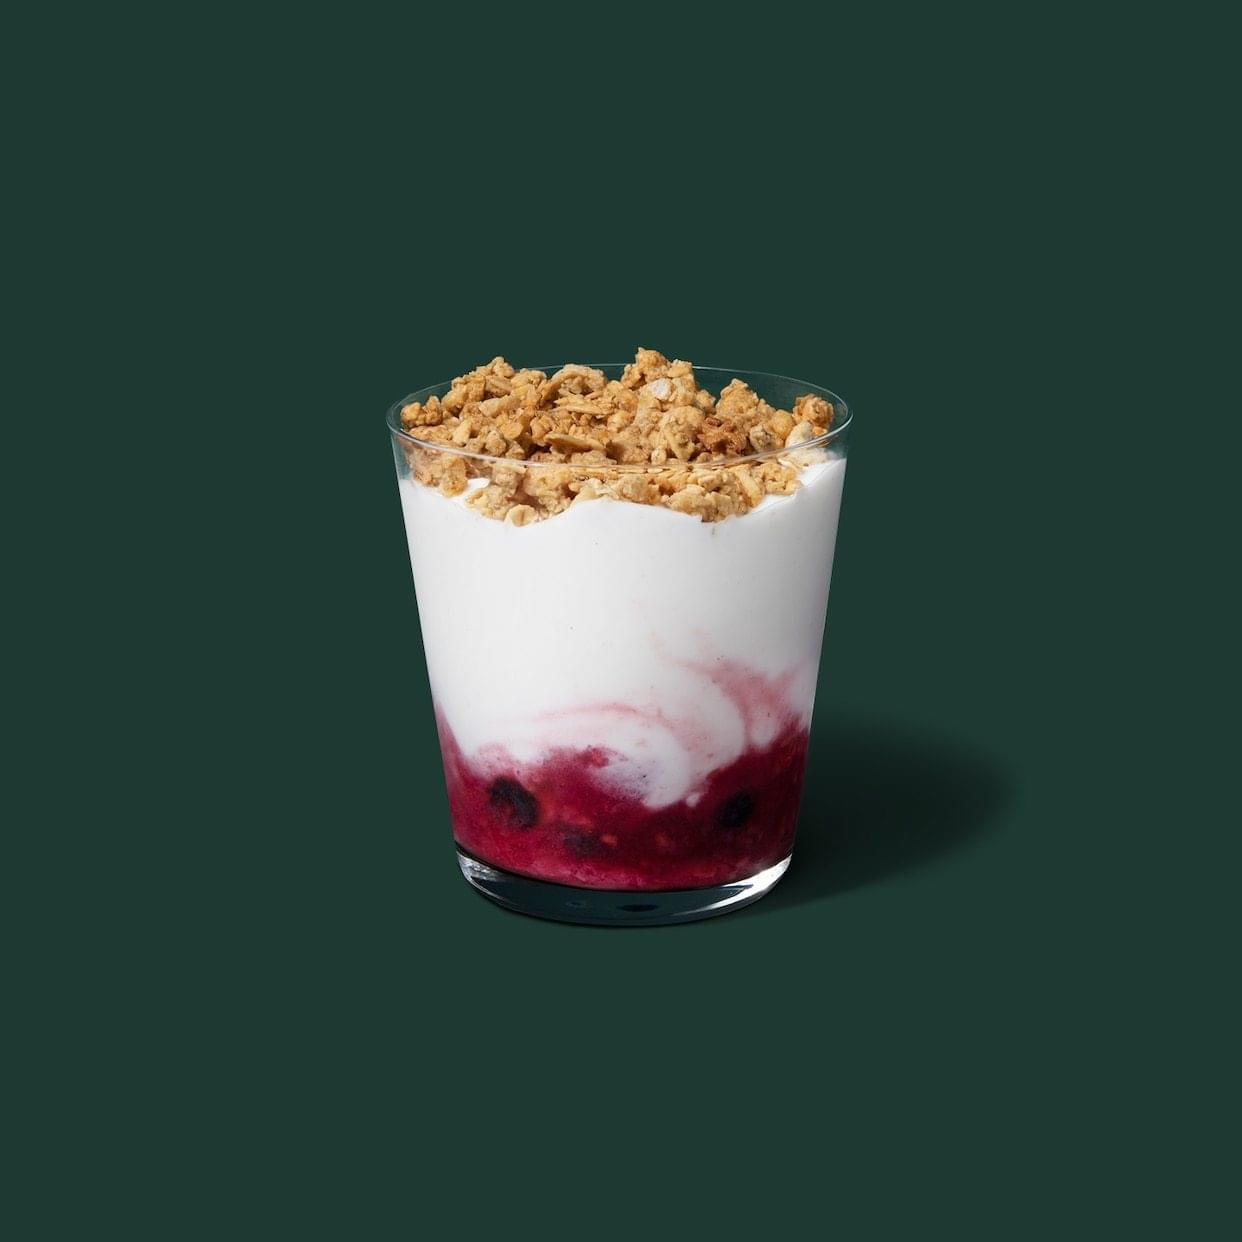 Starbucks Berry Trio Parfait Nutrition Facts